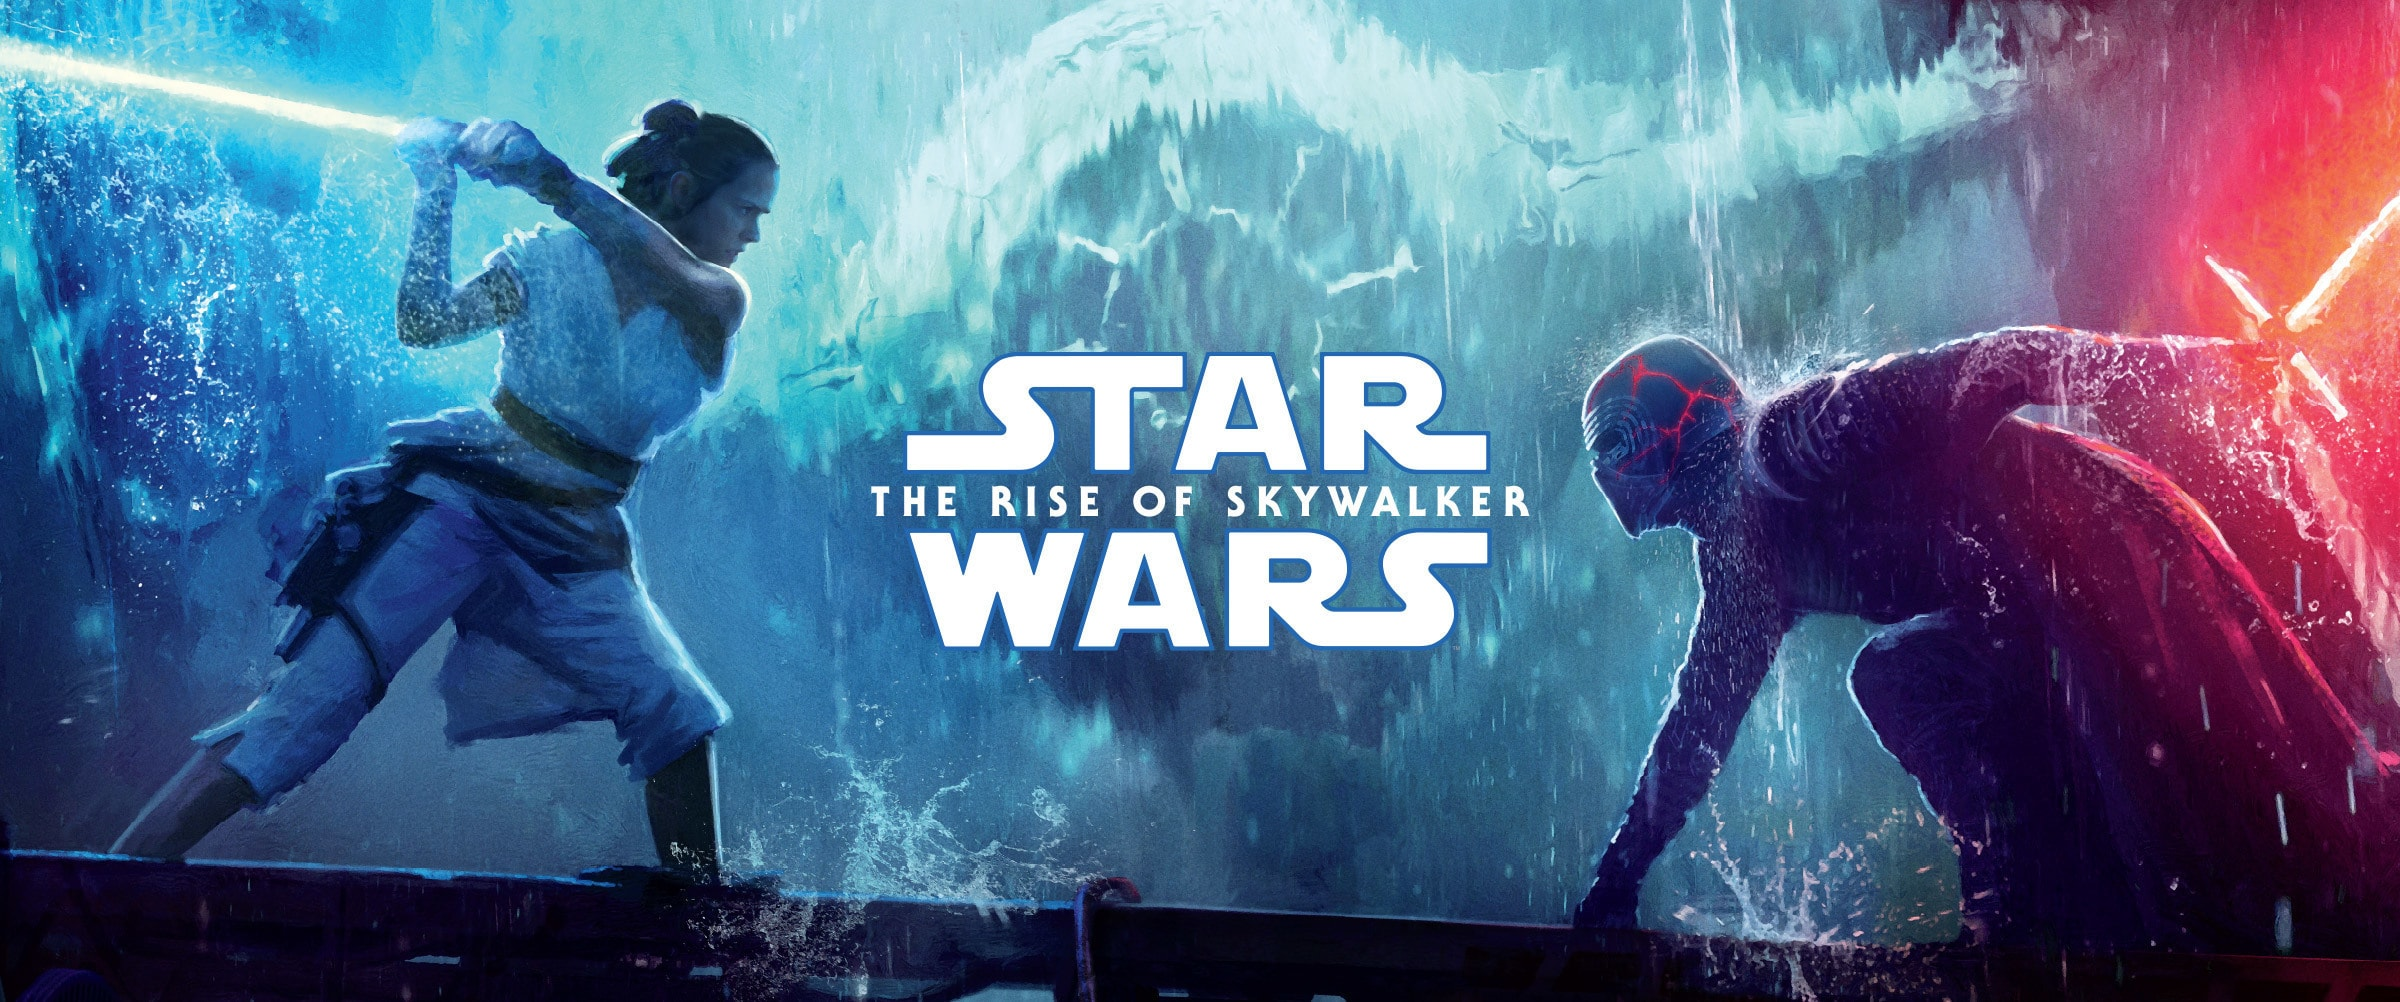 Star Wars: The Rise of Skywalker EMEA Banner - Revamp 2020